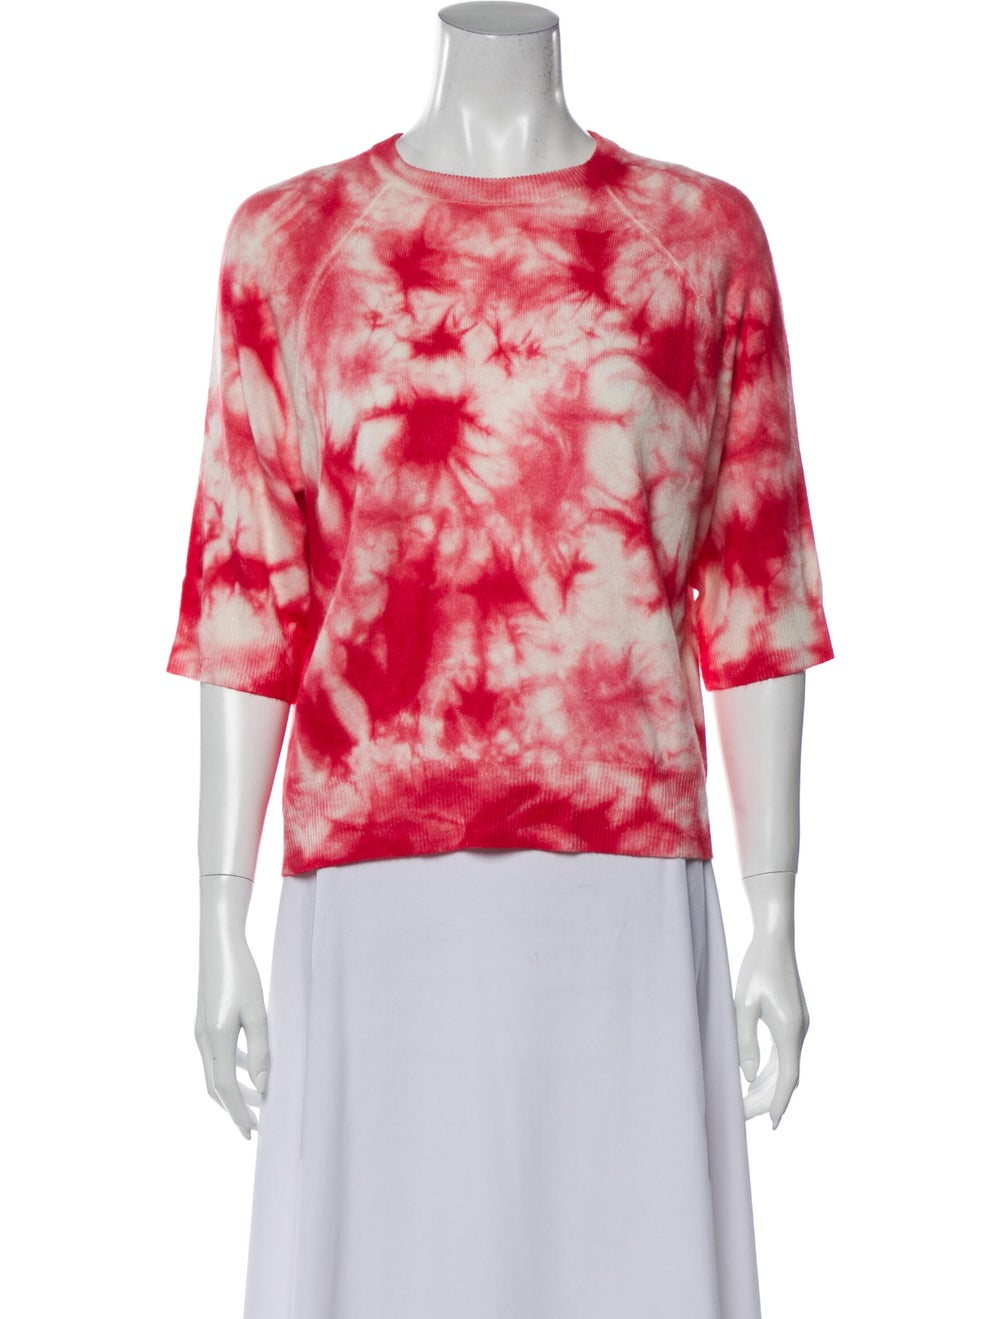 Michael Kors Cashmere Tie-Dye Print Sweater Red - image 1